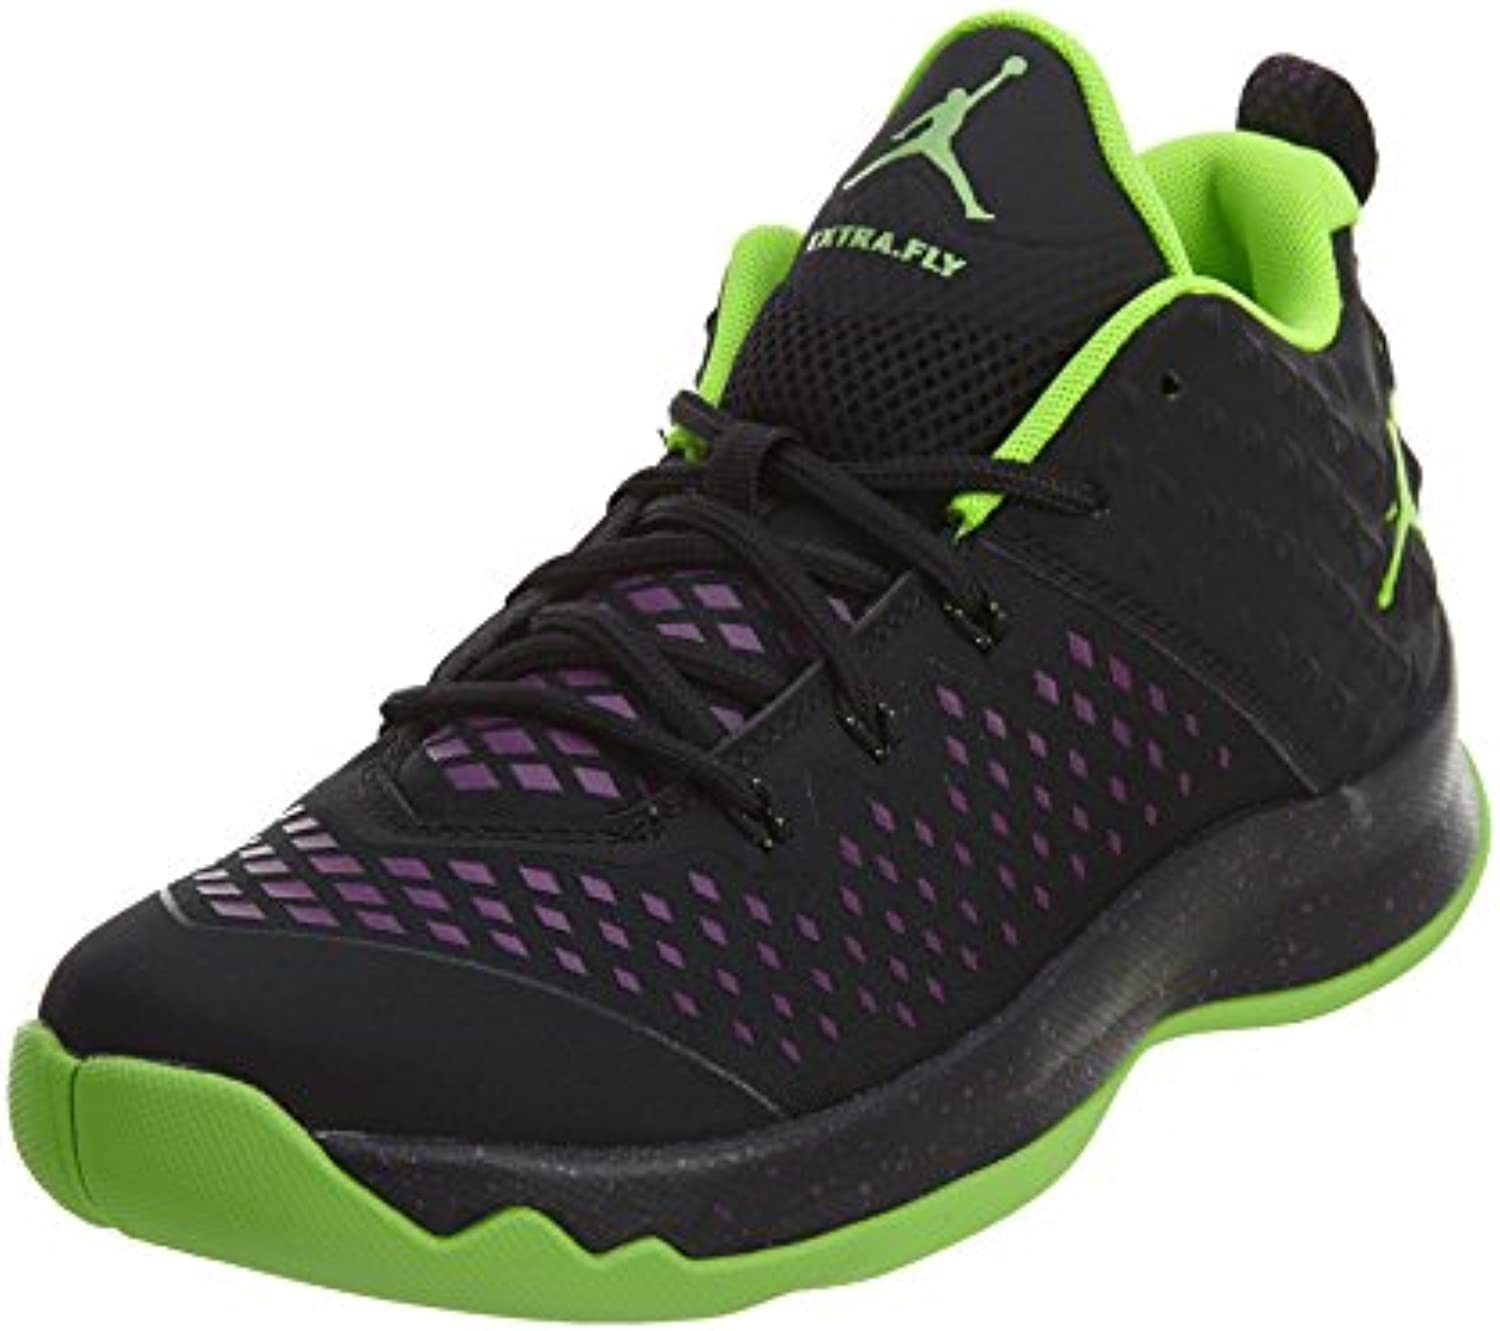 Jordan Extra Fly BG Boys Basketball Shoes